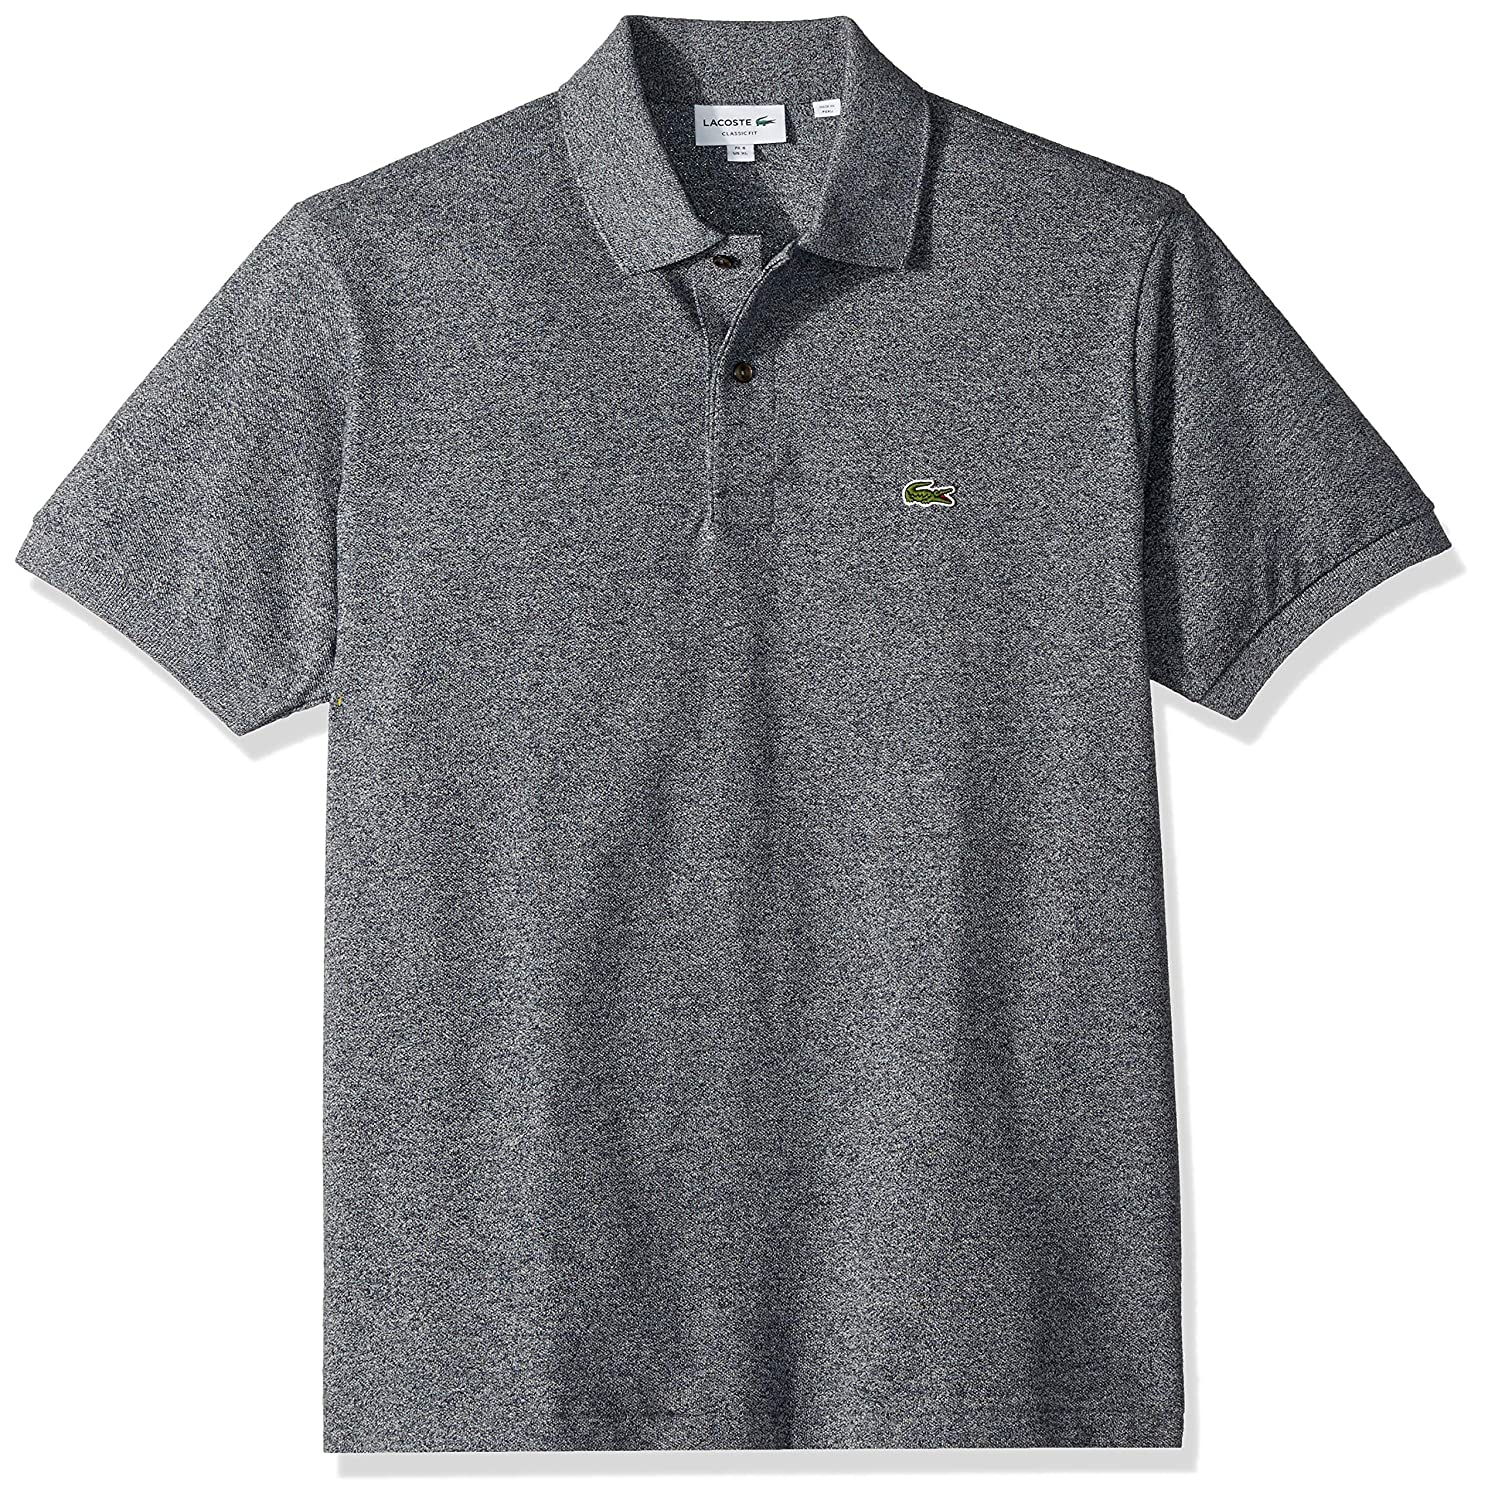 28521635c Lacoste Men's Classic L.12.12 Chine Pique Polo Shirt: Lacoste: Amazon.ca:  Clothing & Accessories